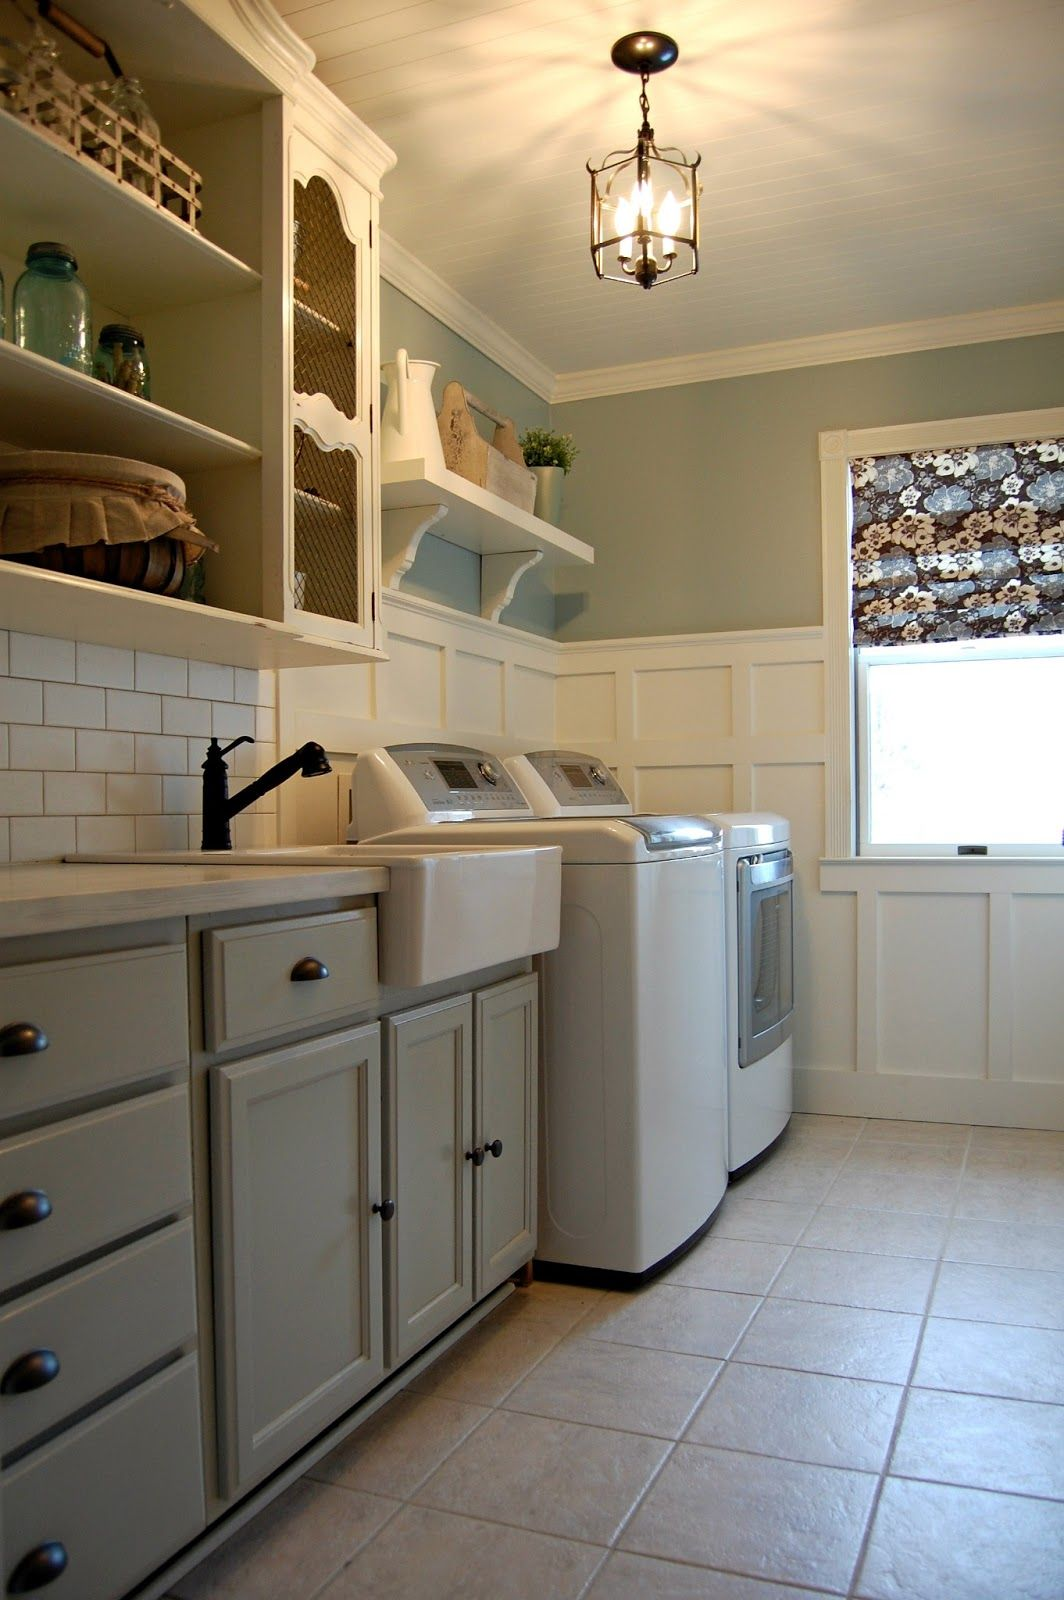 pictures of laundry rooms Roly Poly Farm Laundry Room